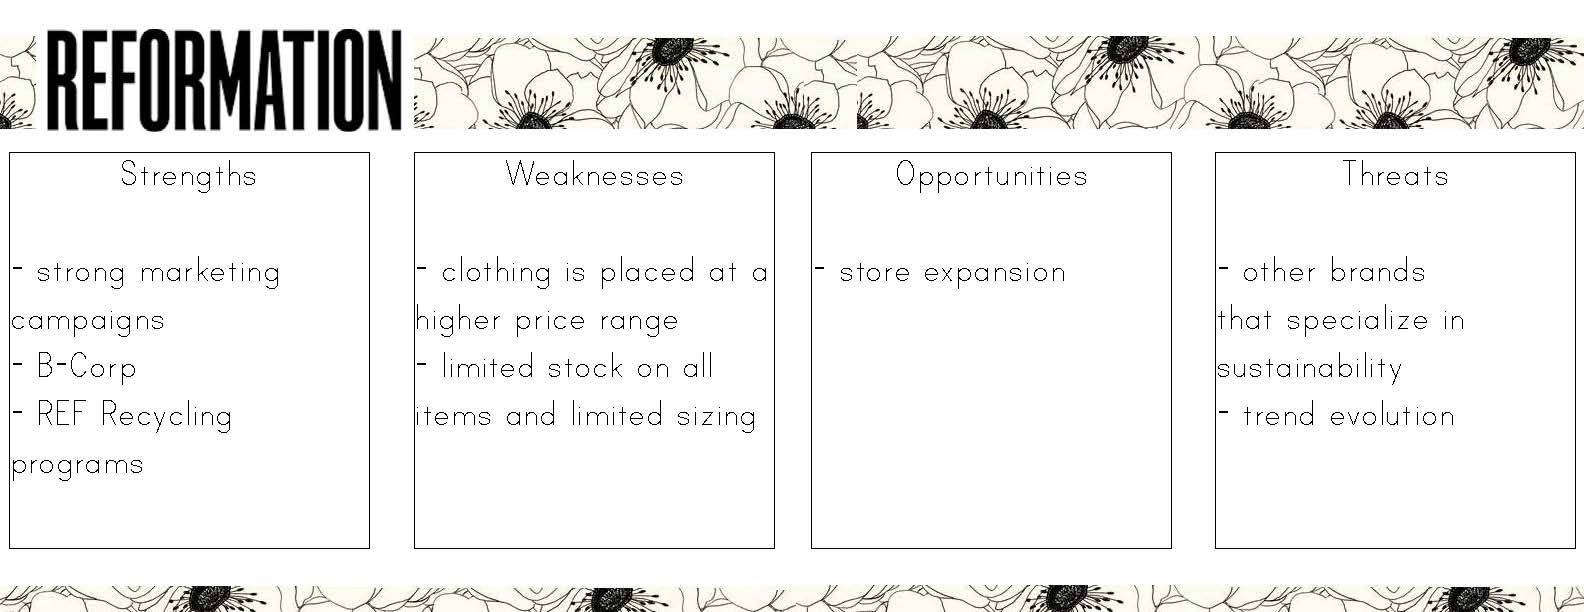 FREE PEOPLE BUYING PROJECT_Page_26.jpg